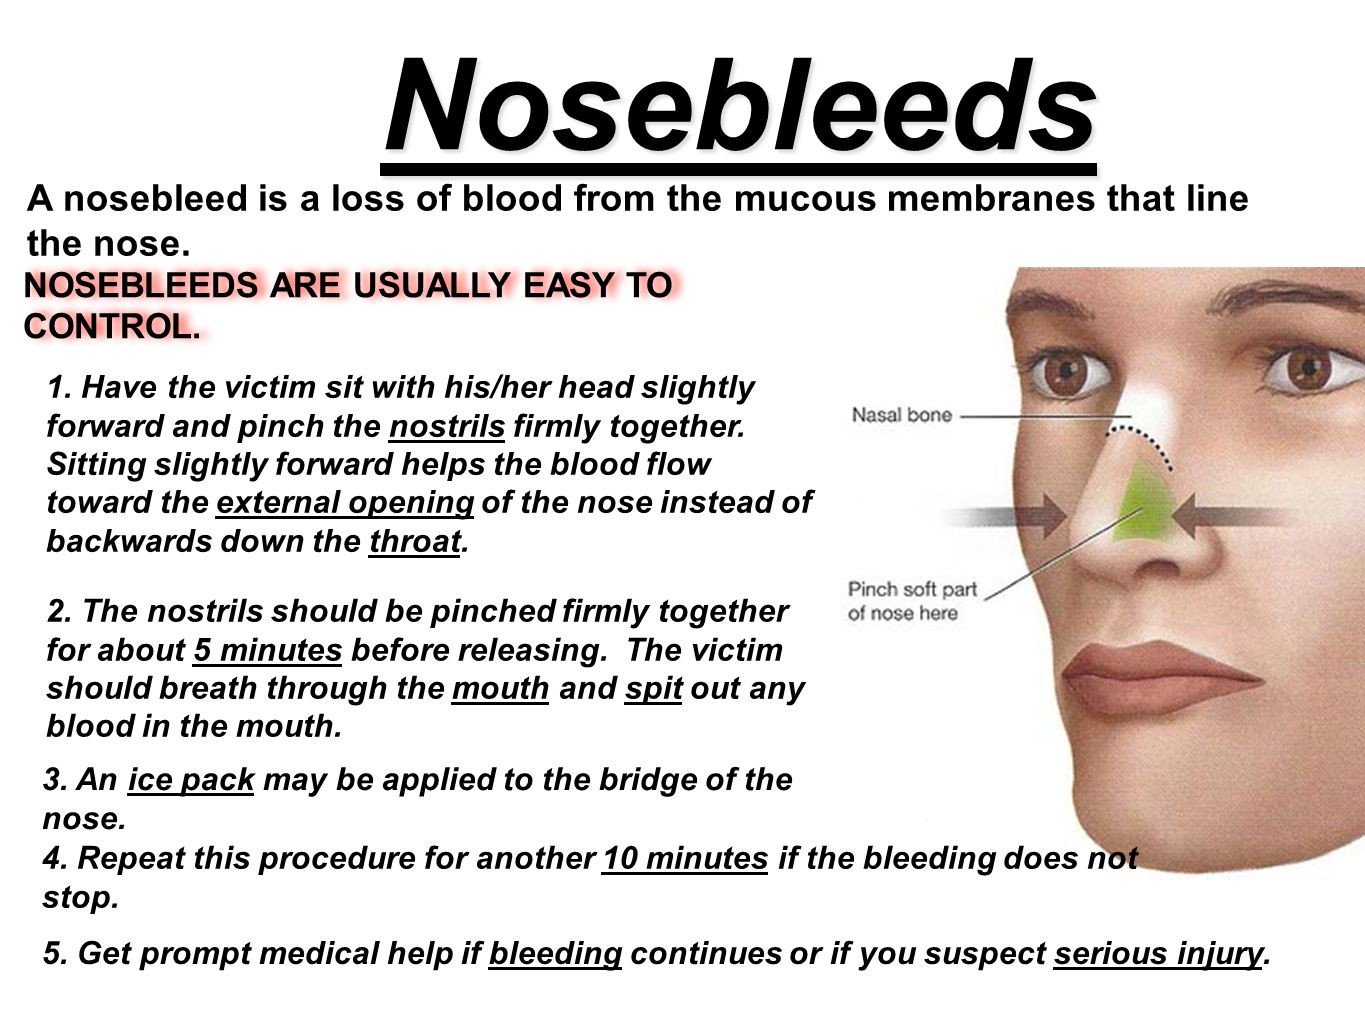 Nosebleeds A nosebleed is a loss of blood from the mucous membranes that line the nose. NOSEBLEEDS ARE USUALLY EASY TO CONTROL.